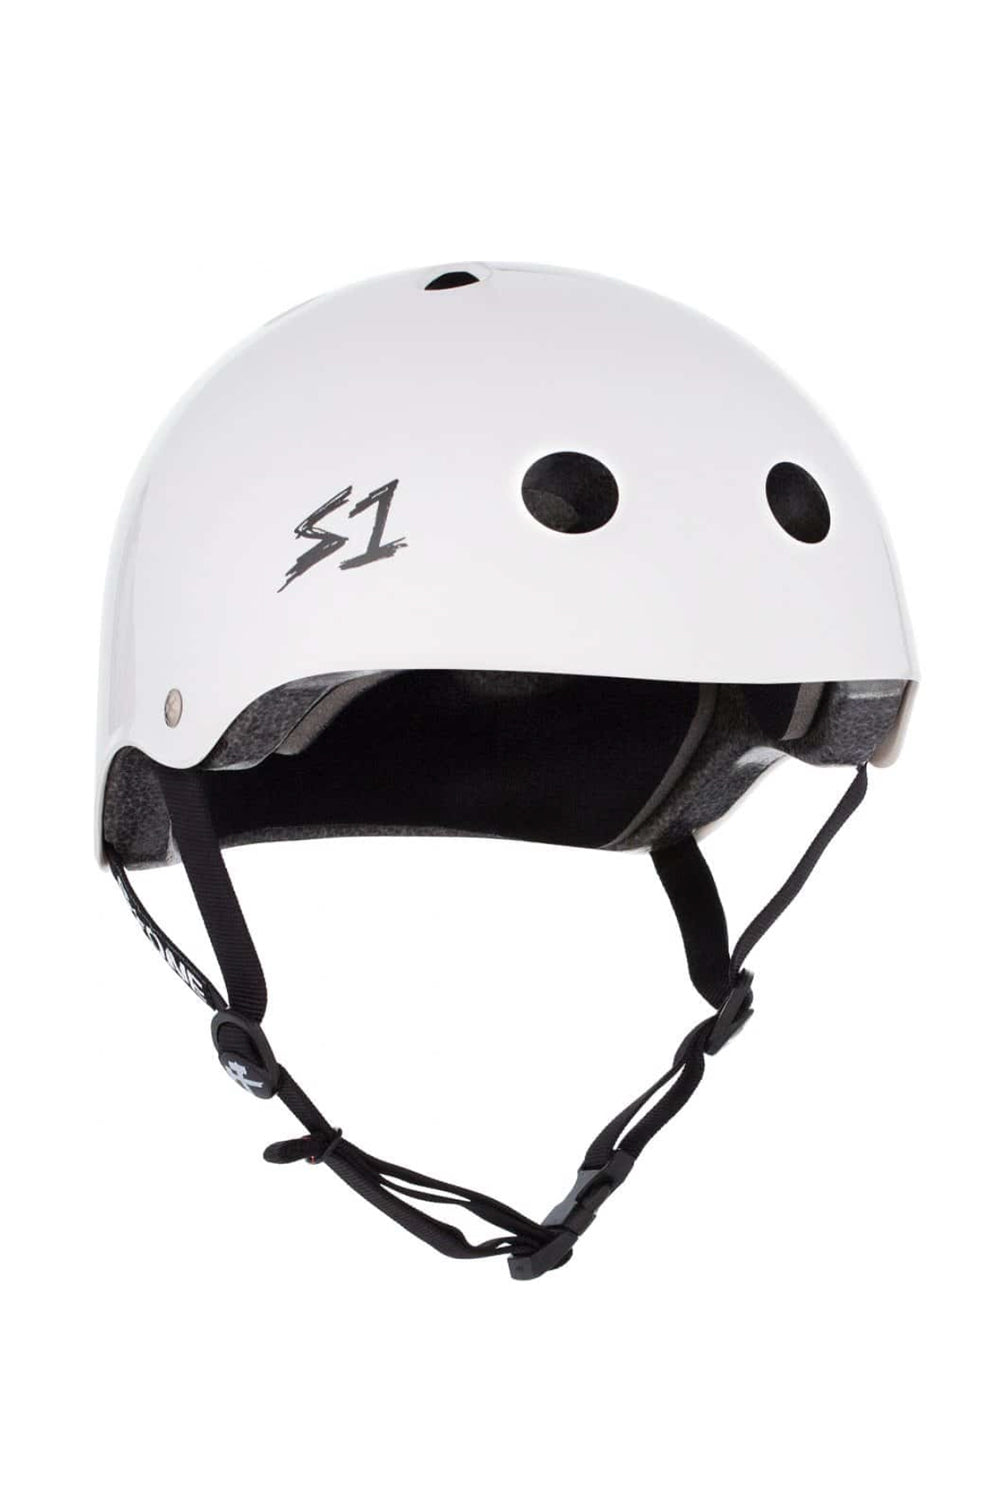 S One Lifer Helmet - White Gloss